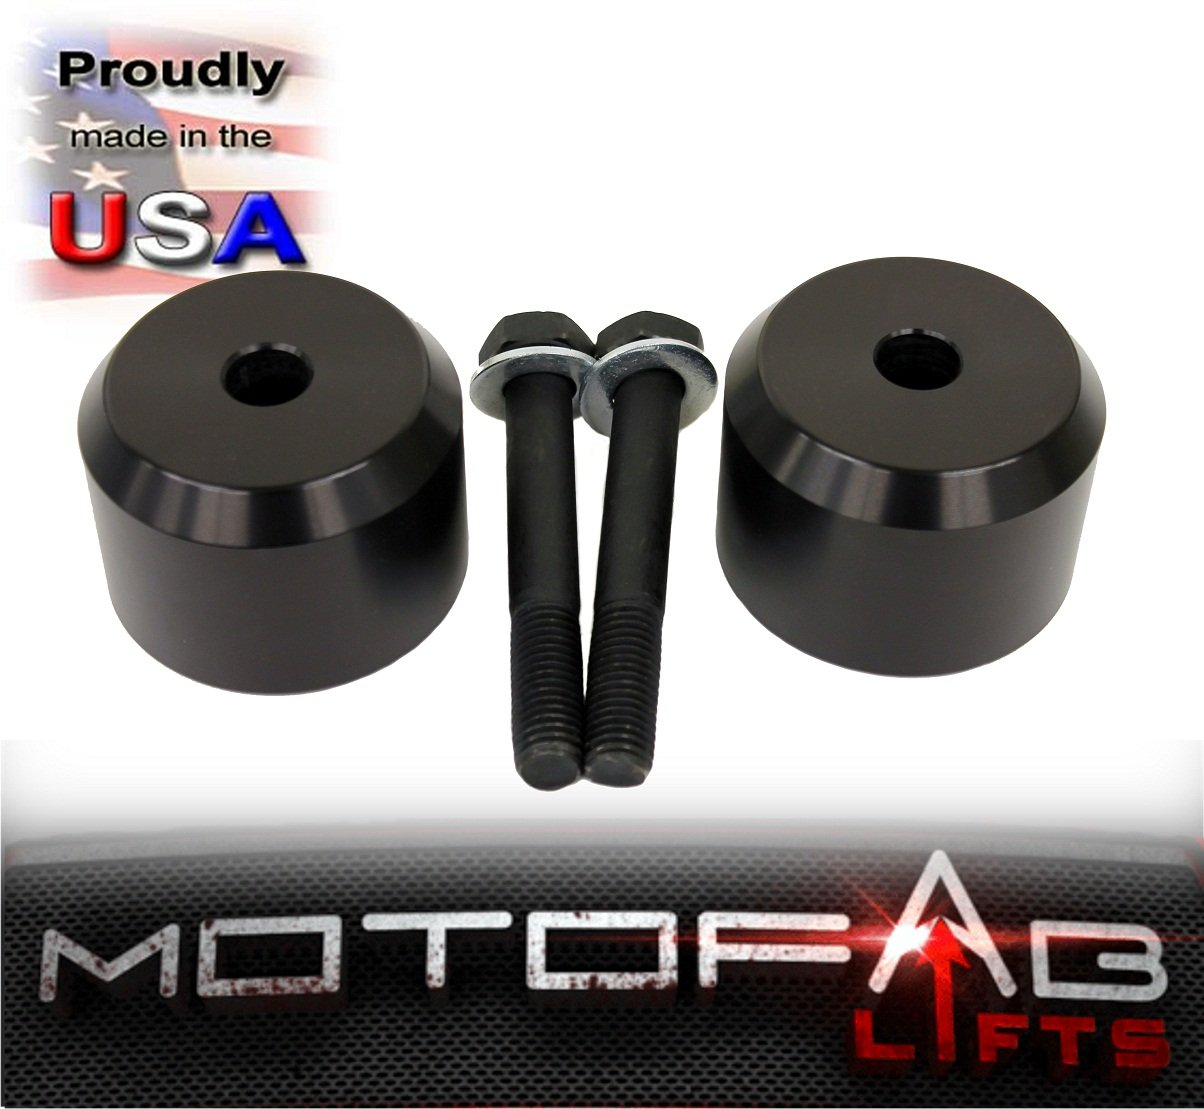 MotoFab Lifts 2 Front Leveling Lift kit for 2005-2017 Ford F250 F350 SUPER DUTY 4WD USA